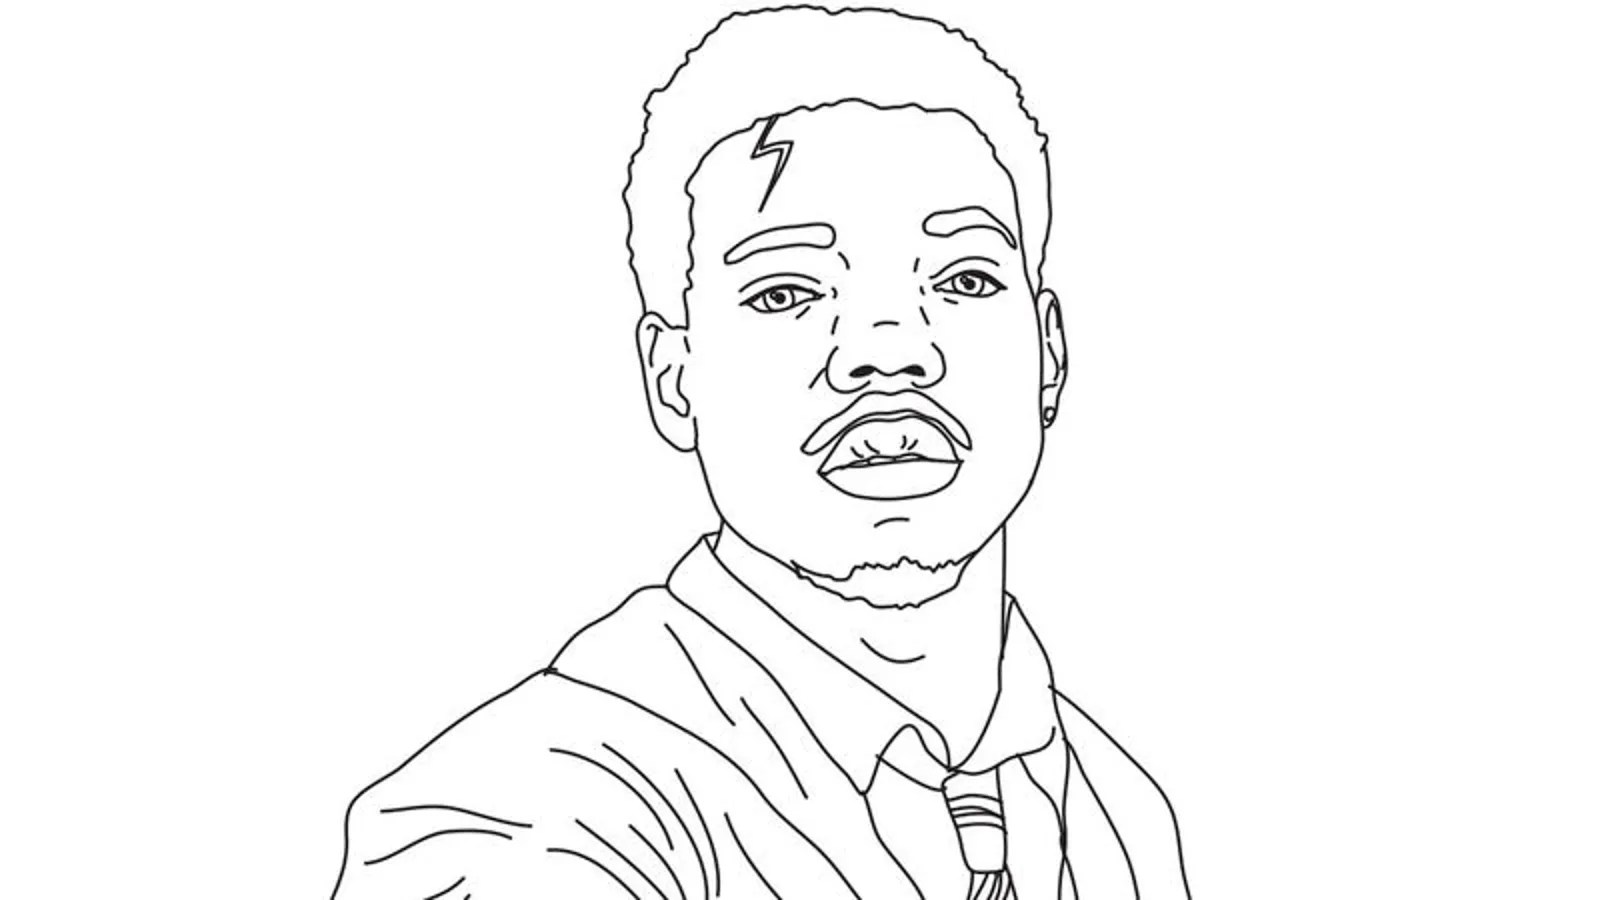 Chance The Rapper's Coloring Book now has an actual